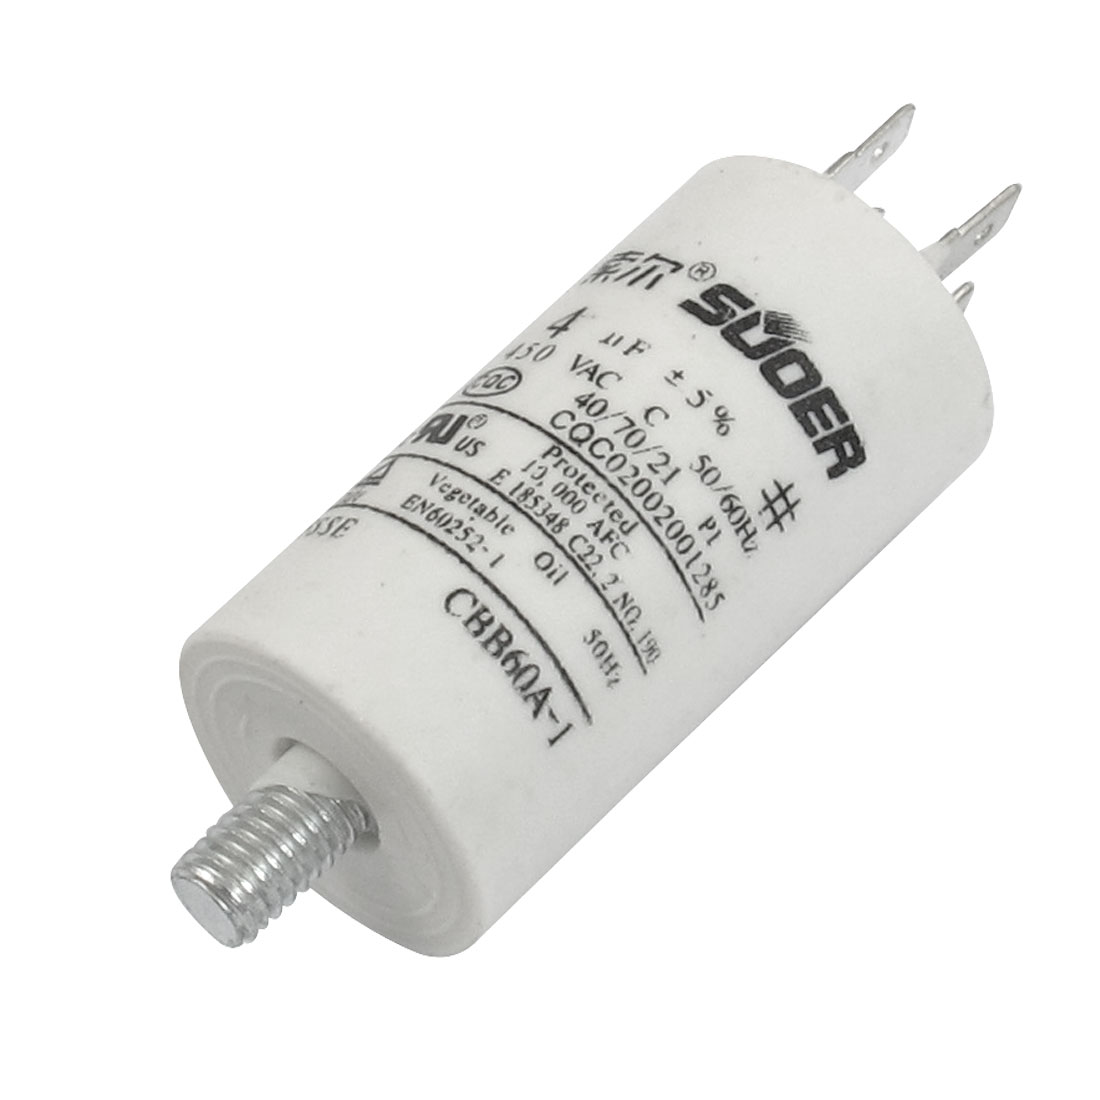 AC 450V 4uF 8mm Thread Non Polar Polypropylene Film Capacitor